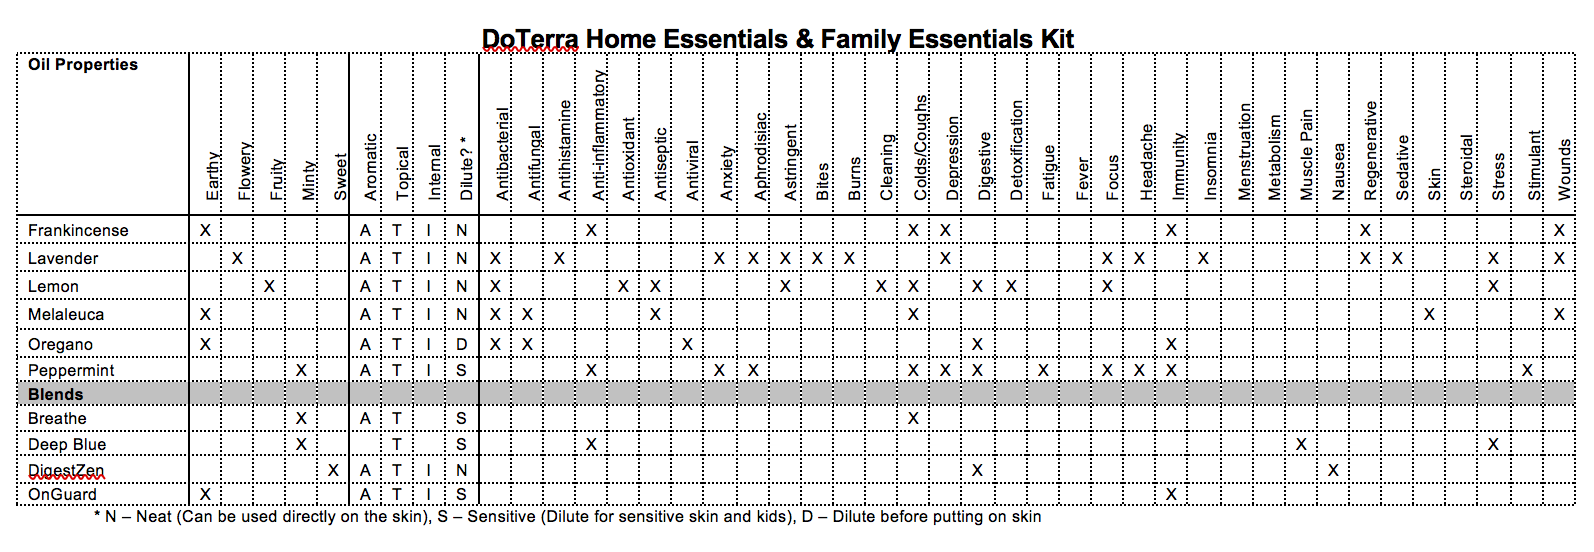 DoTerra Home Essentials & Family Essentials Kit Properties Chart